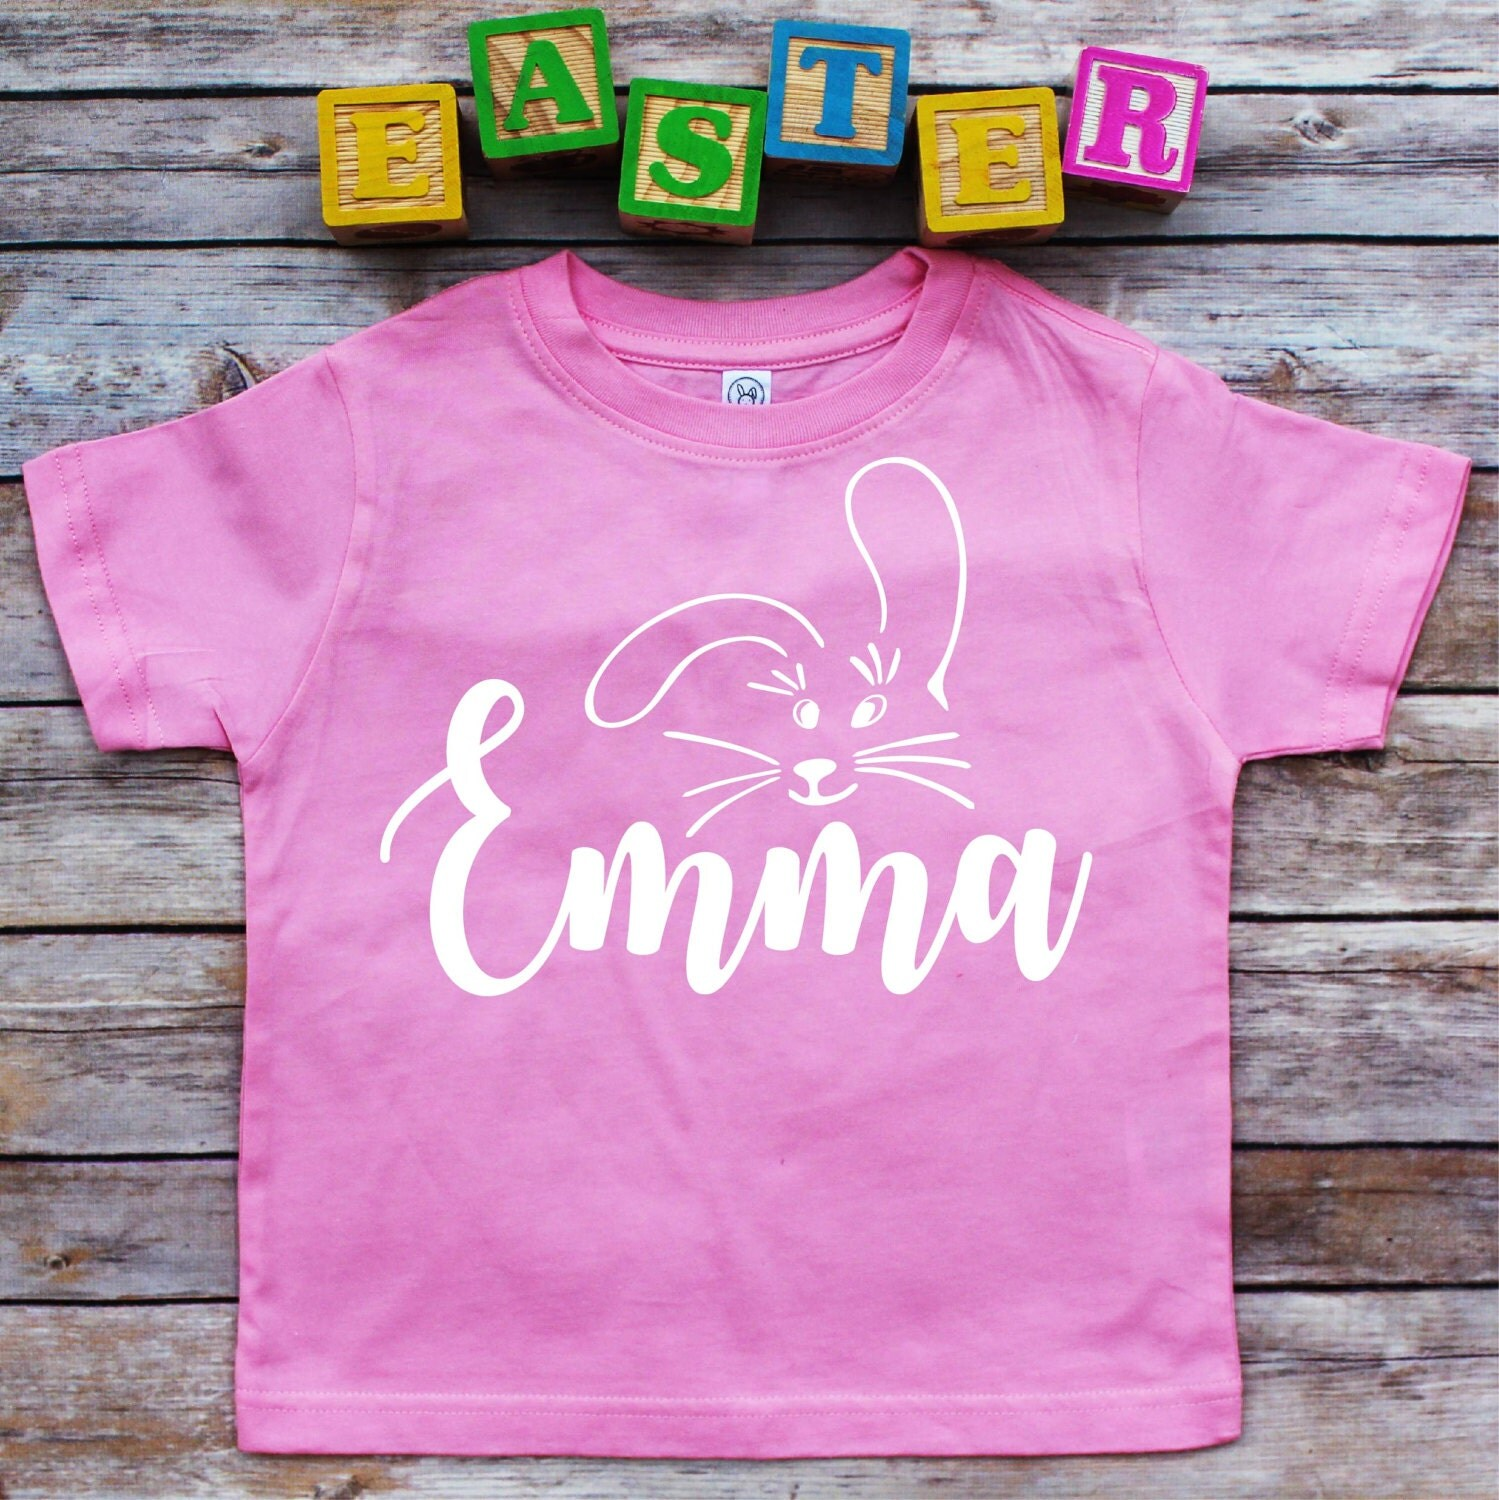 Design your own t shirt in pakistan - Easter Toddler Shirt Bunny Shirt Easter Shirt Easter Bunny Kids Easter Shirt Girls Easter Shirt Easter Infant Shirt Personalized Shirt